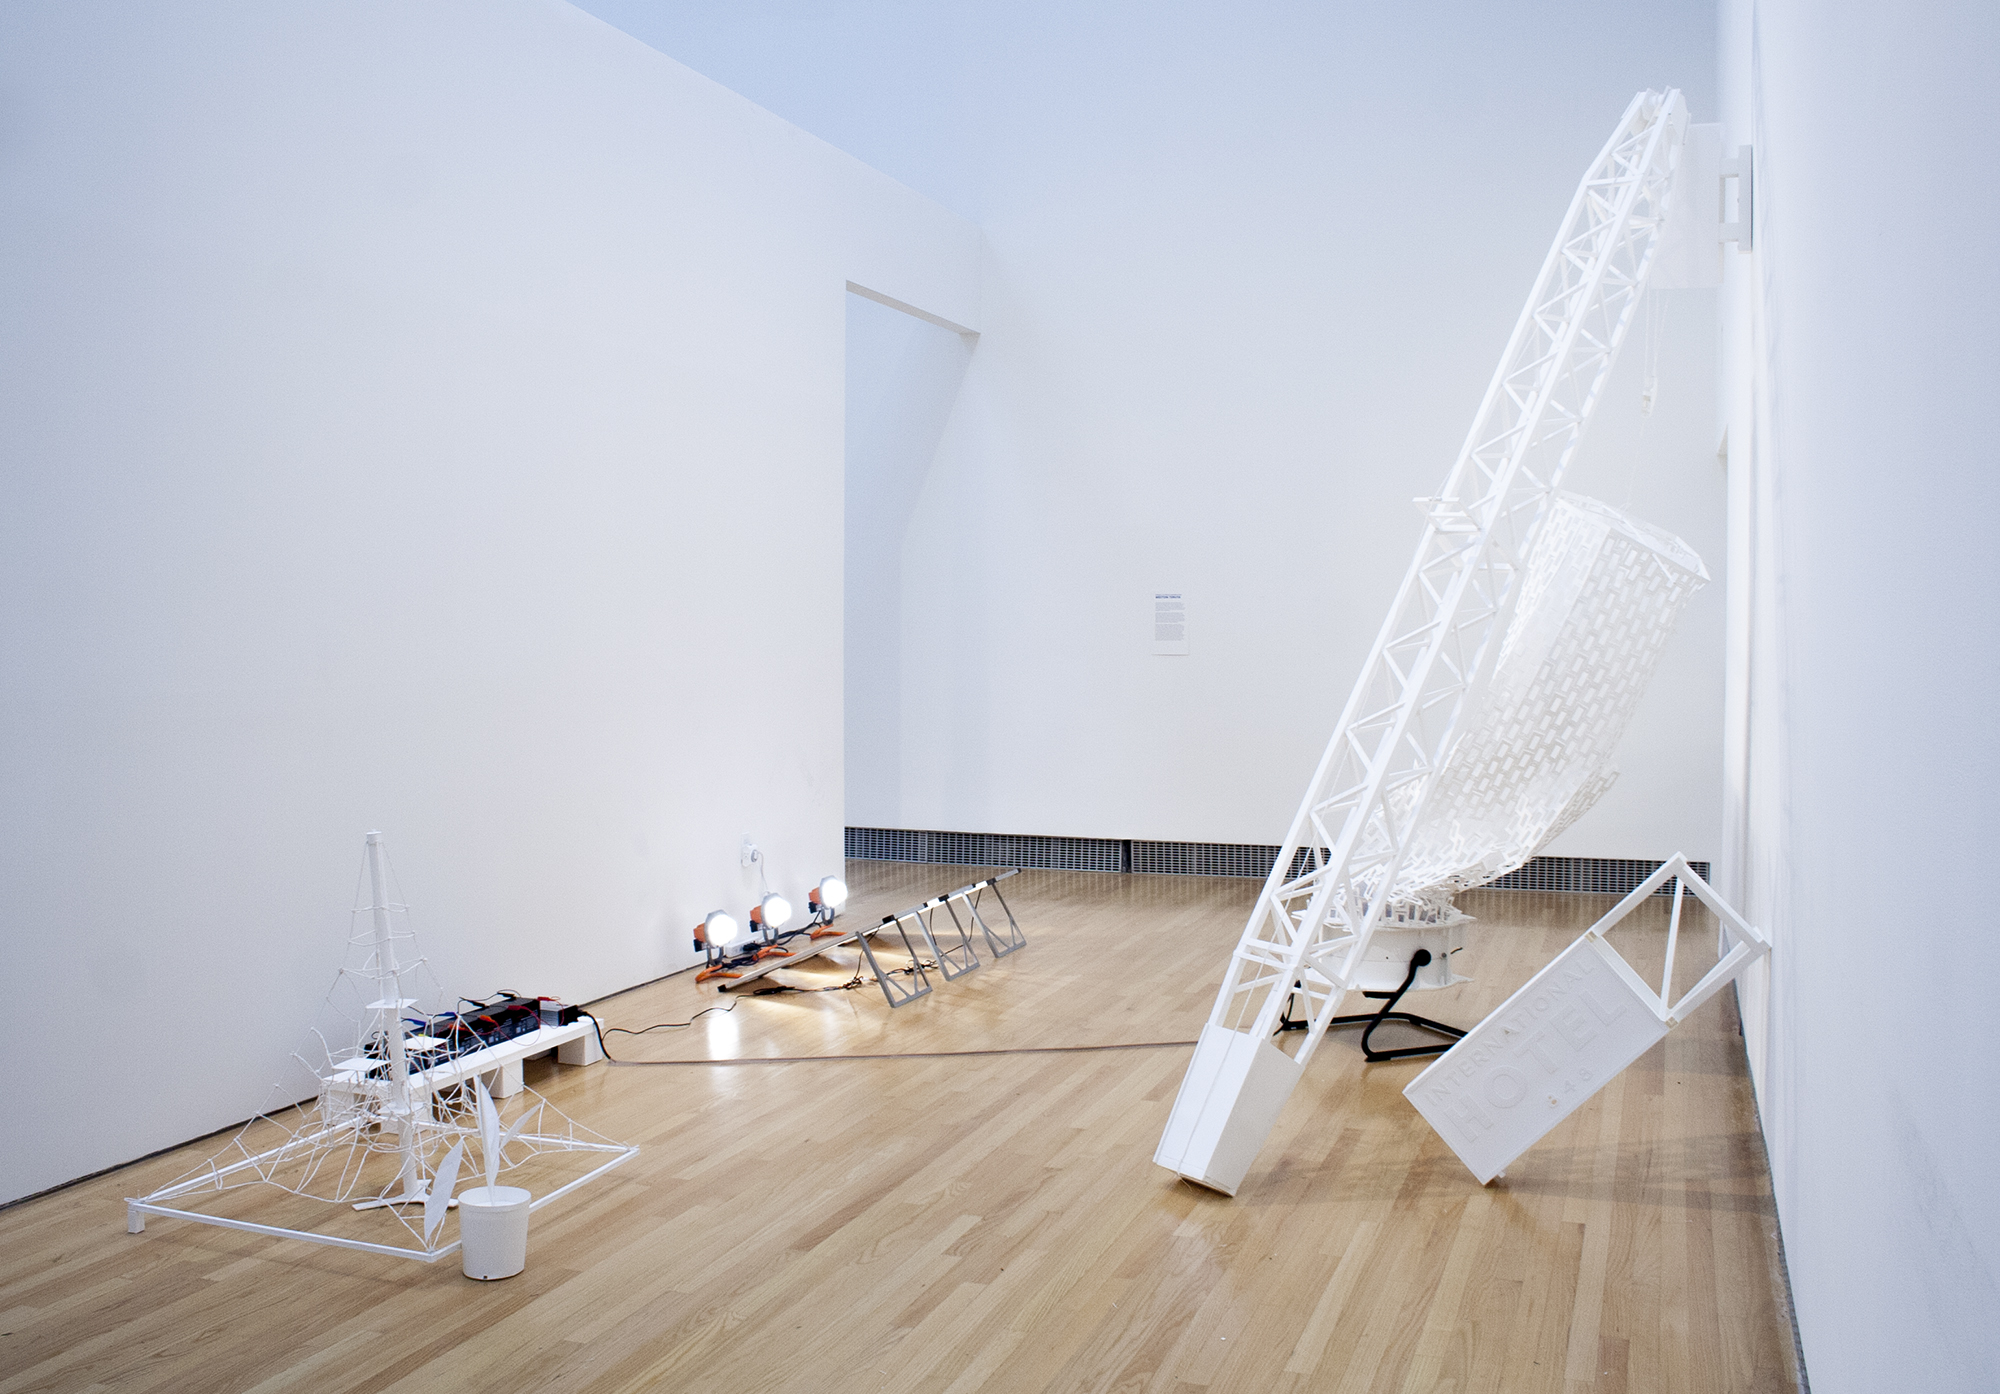 Weston Teruya, My DEIR, here we must run as fast as we can, just to stay in place, 2015, solar panels, fan, lights, batteries, electronics, and paper sculpture, 156 x 108 x 120 inches